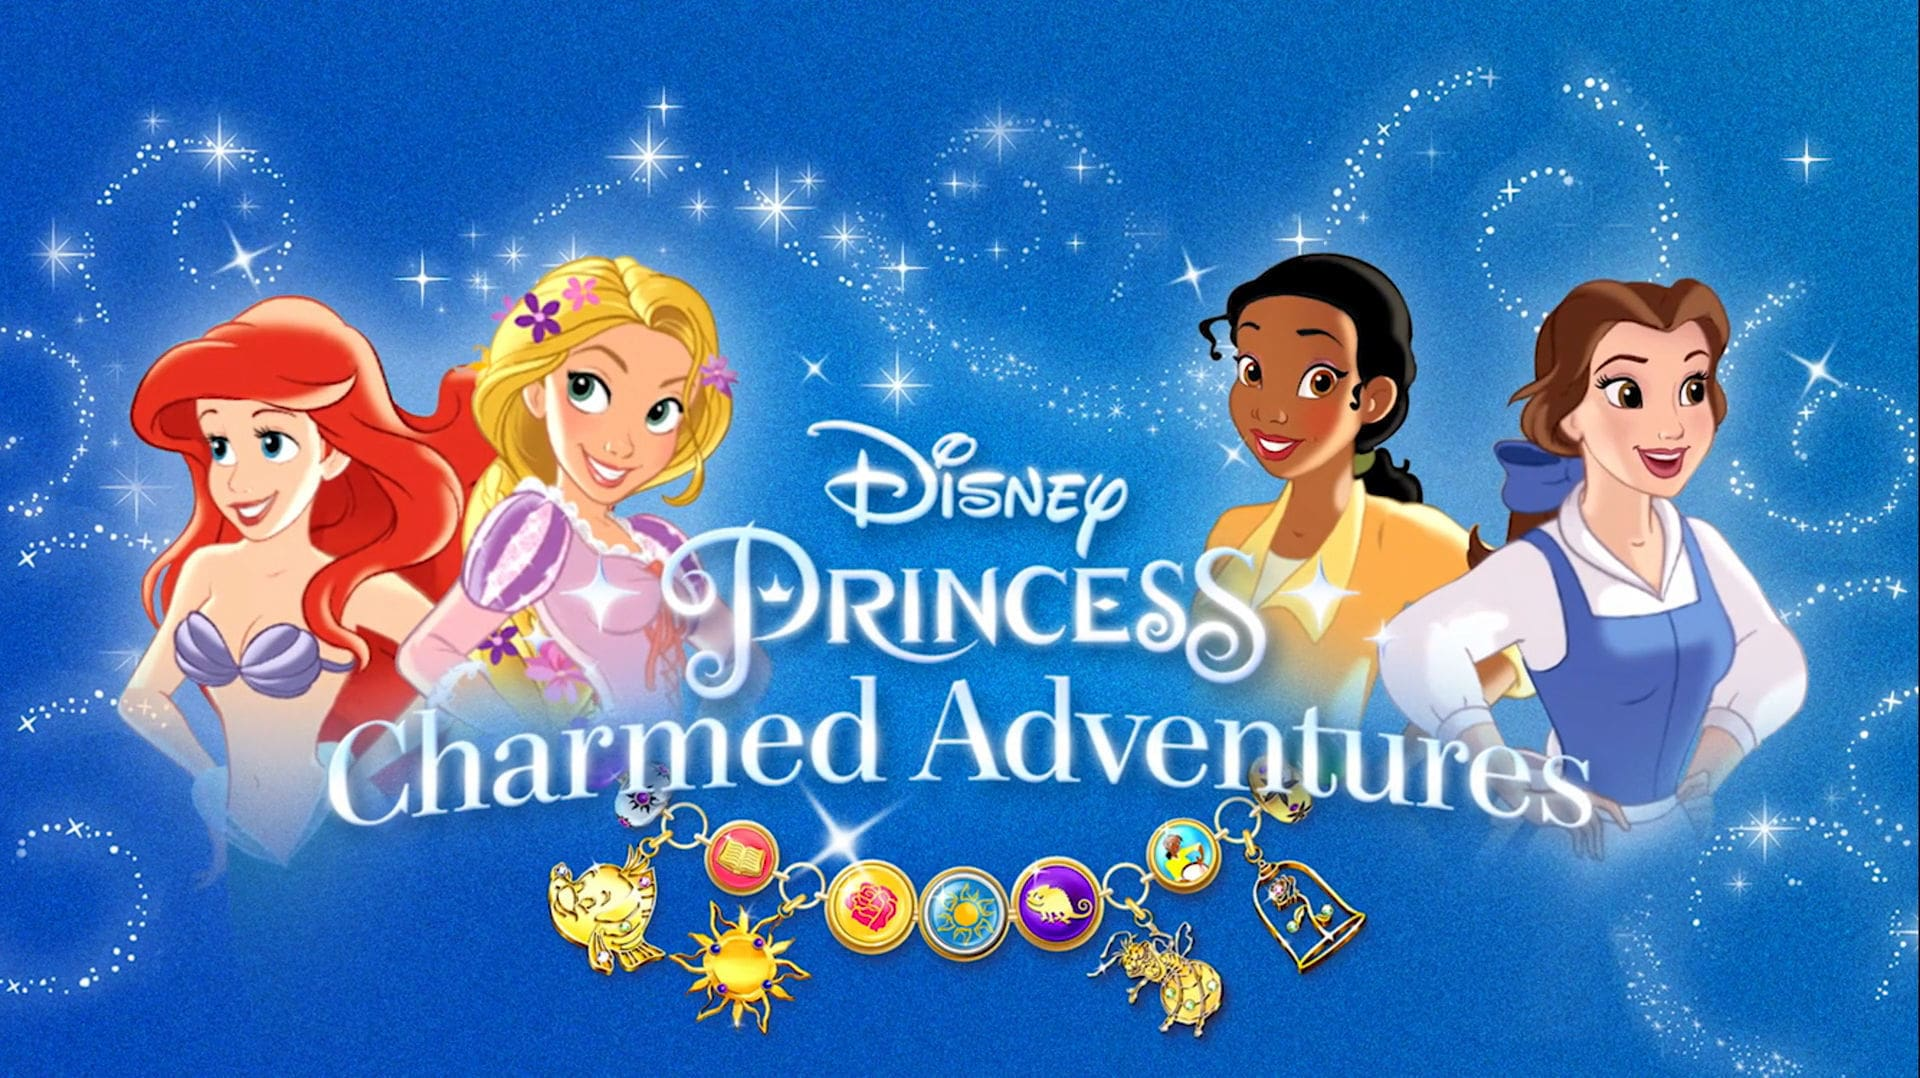 Disney Princess: Charmed Adventures - Official App Preview